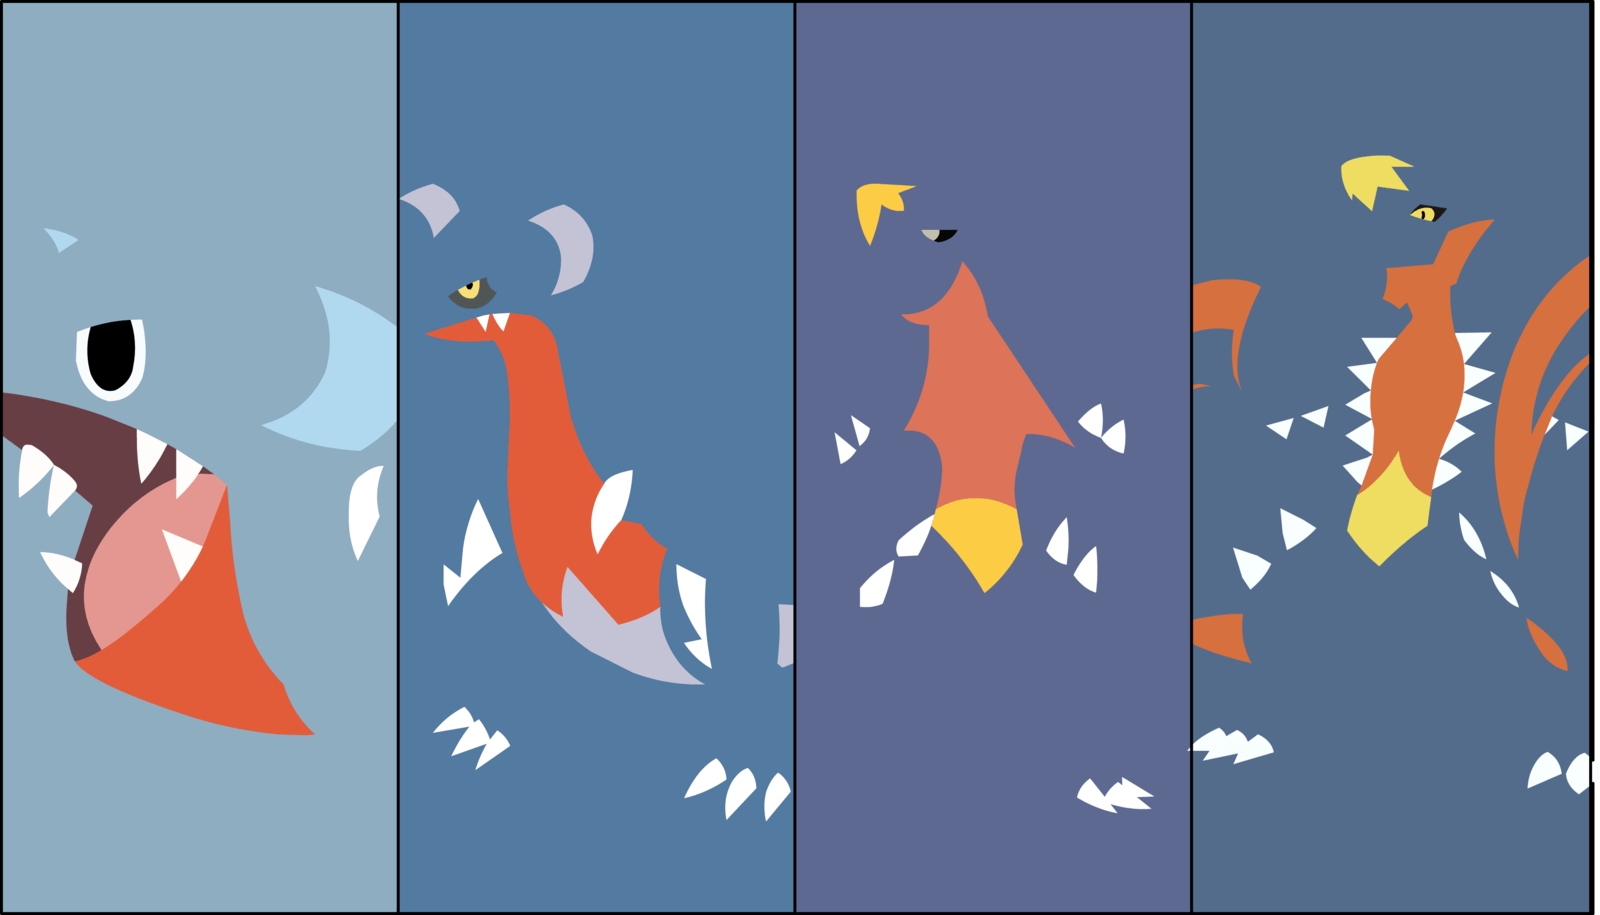 86+ Garchomp Wallpapers